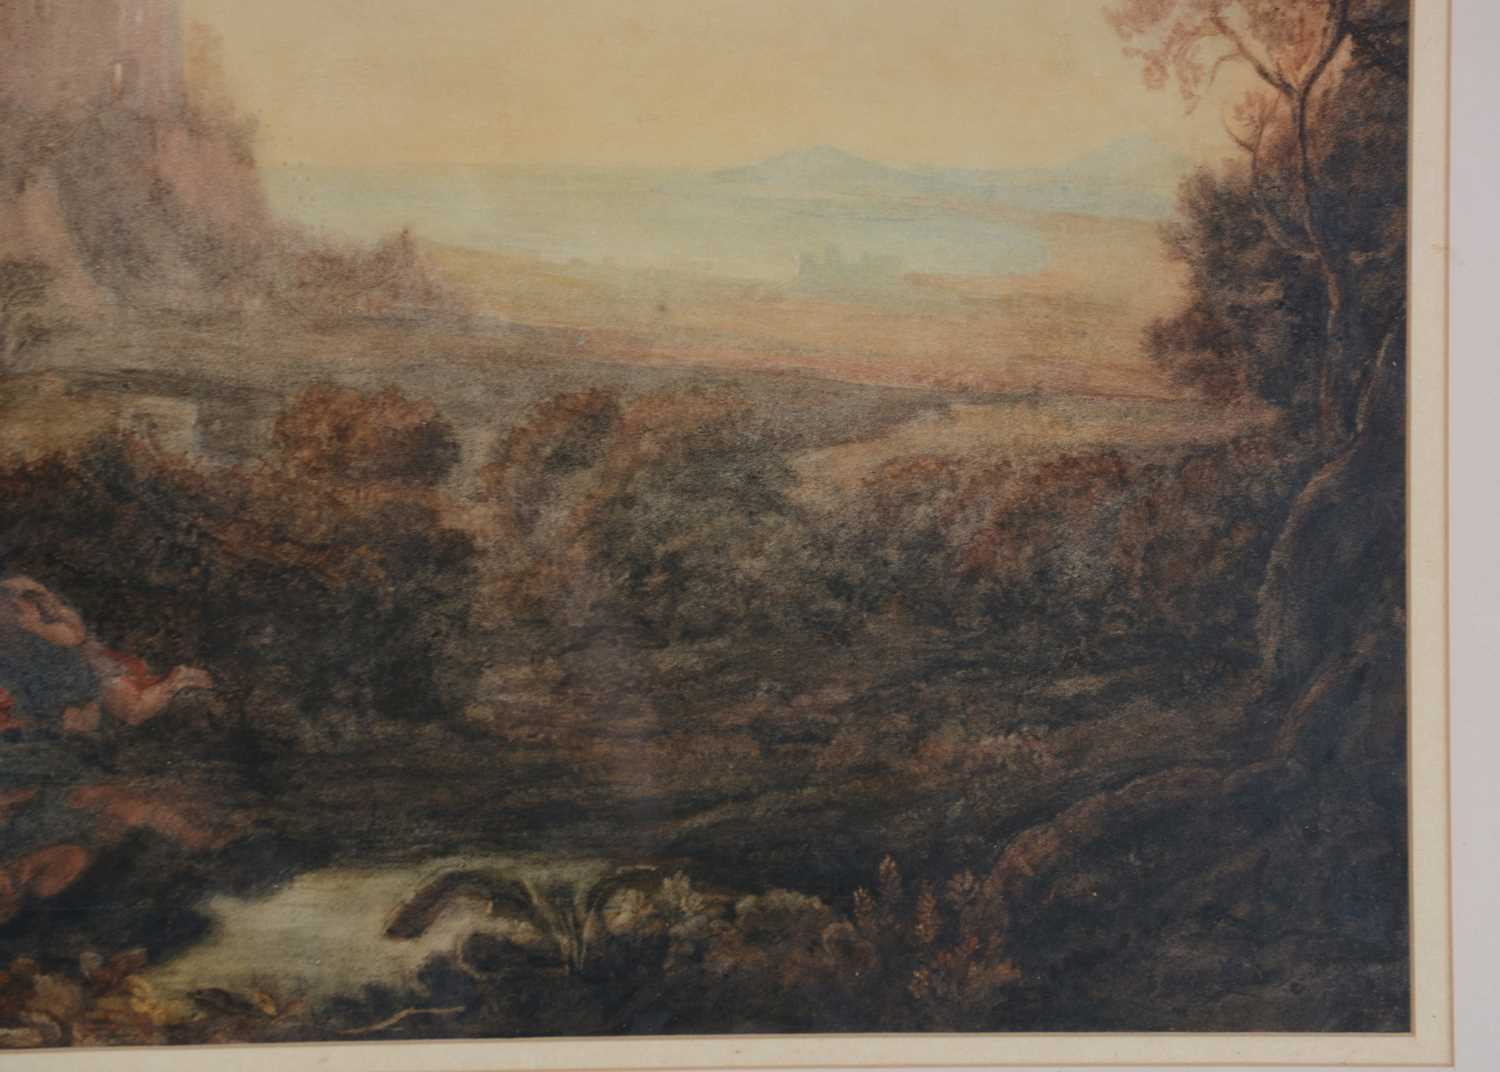 Attributed to Joseph Mallord William Turner, RA - watercolour - Image 4 of 11